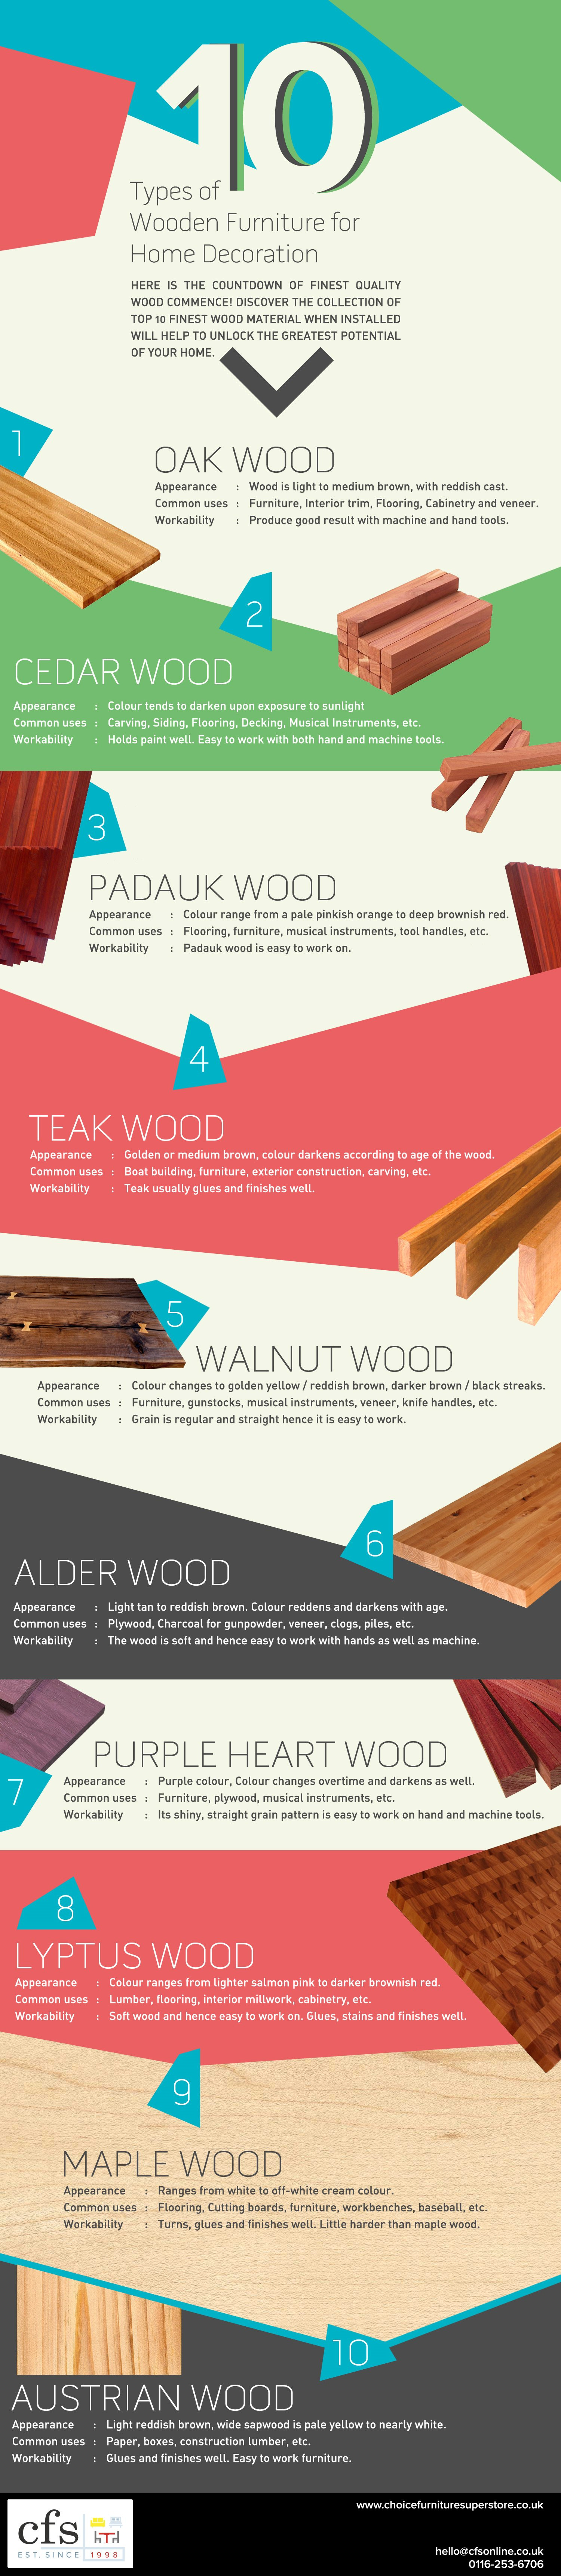 10 Types of Wooden Furniture For Home Decoration Infographic